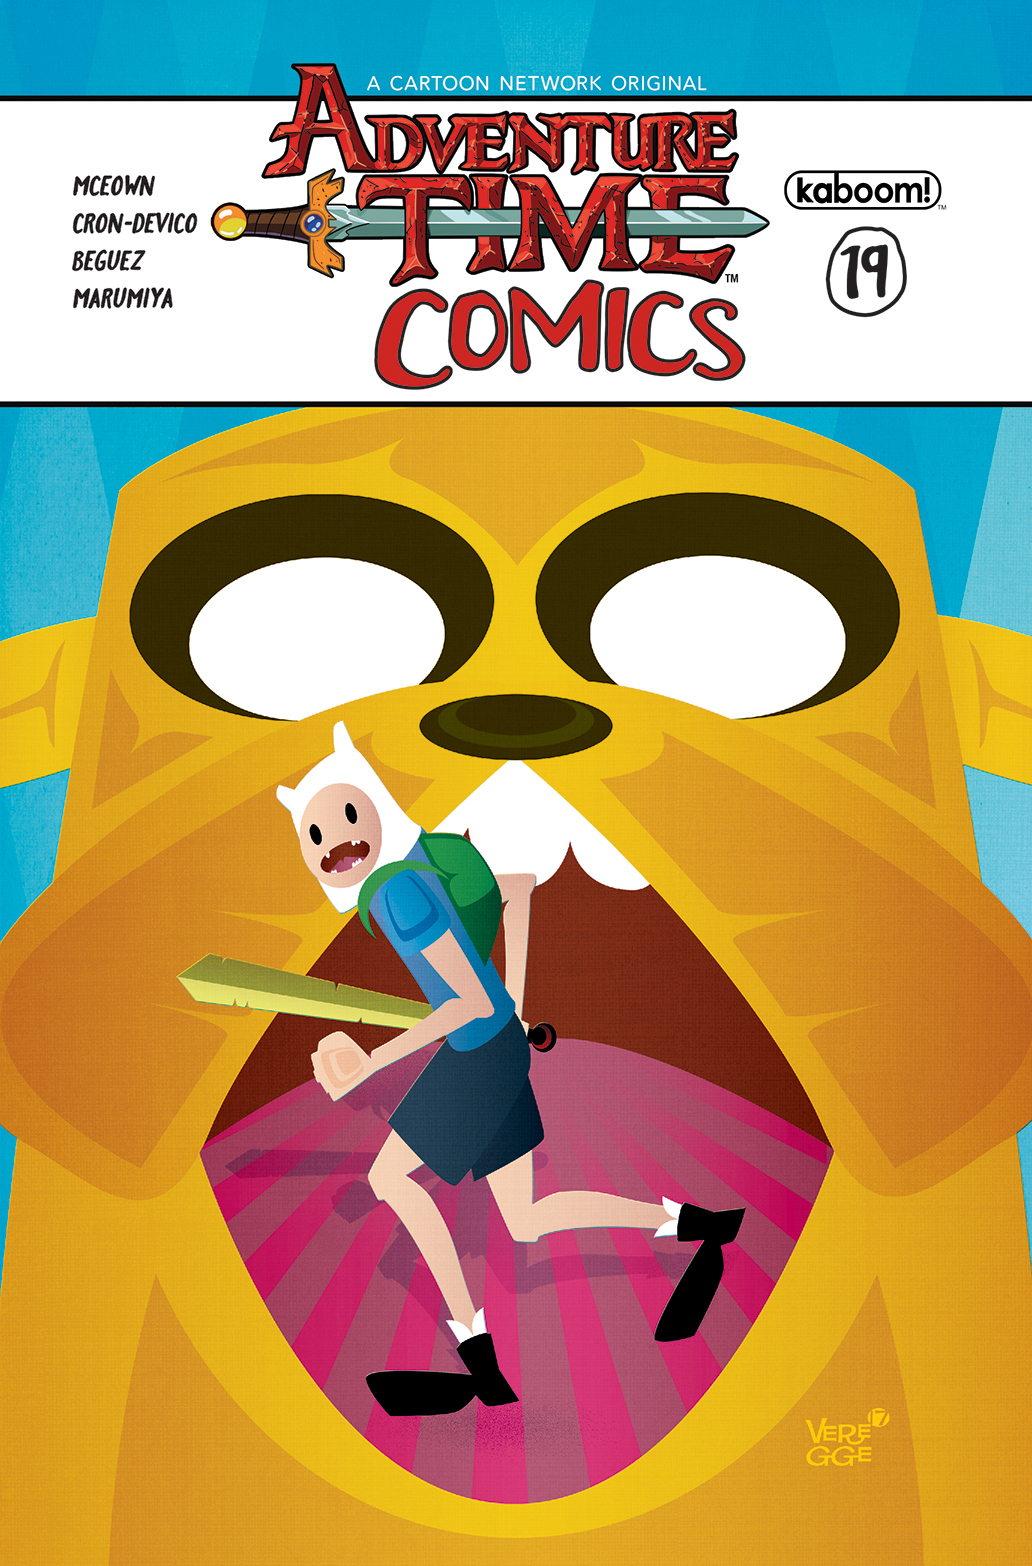 ADVENTURE TIME COMICS #19 SUBSCRIPTION VEREGGE VAR